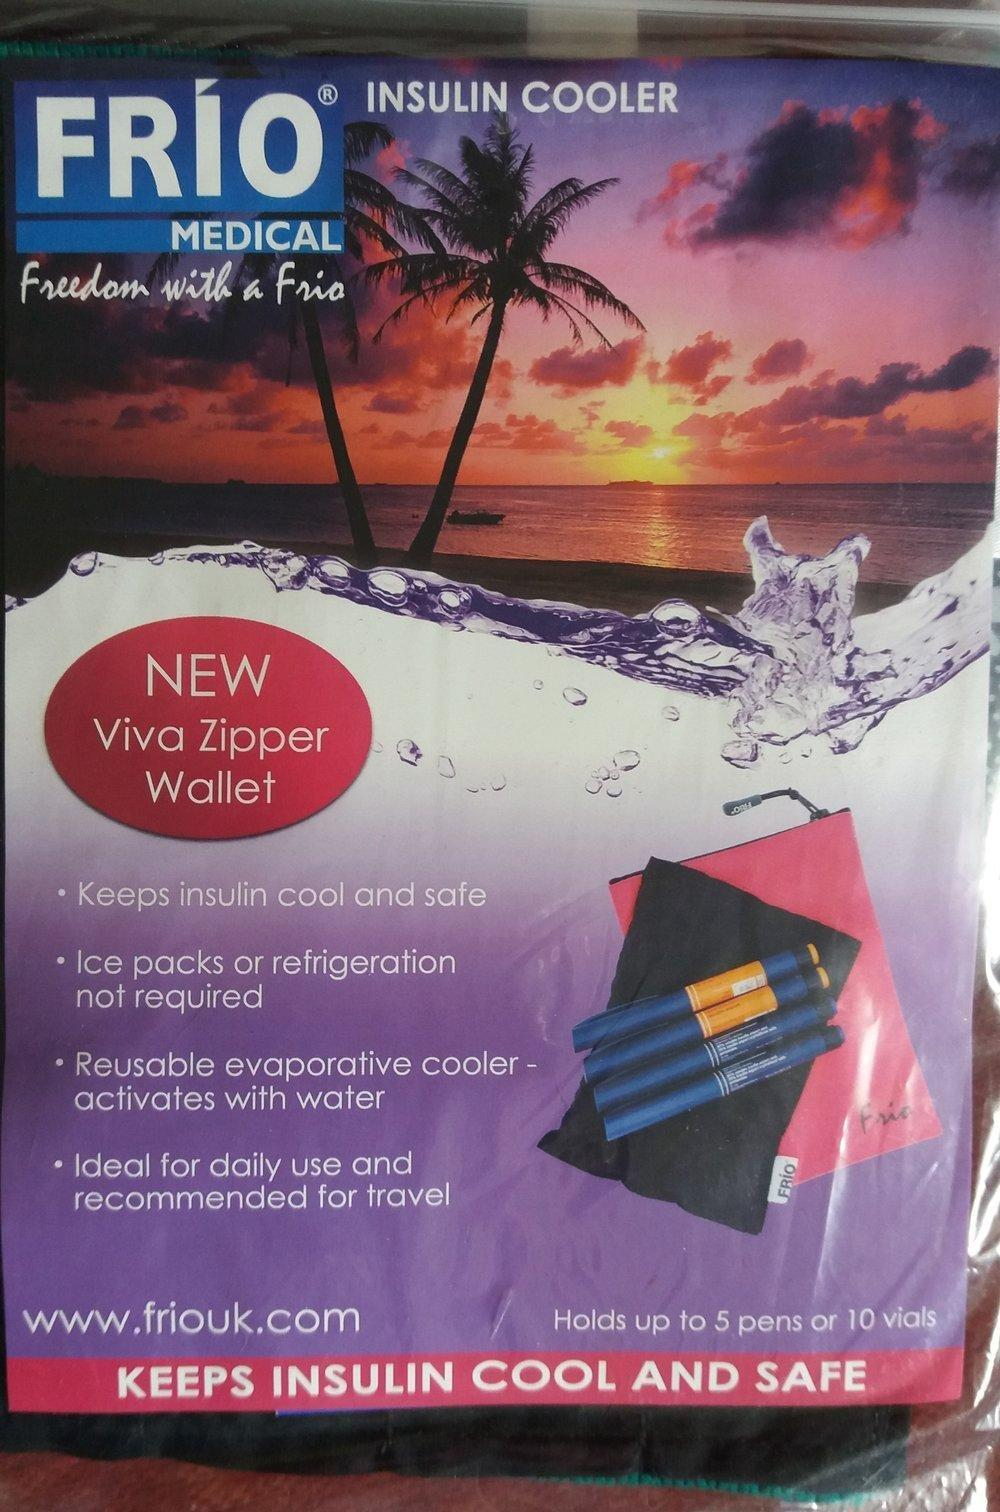 Frio Insulin Cooler Giveaway With Dwed Membership!